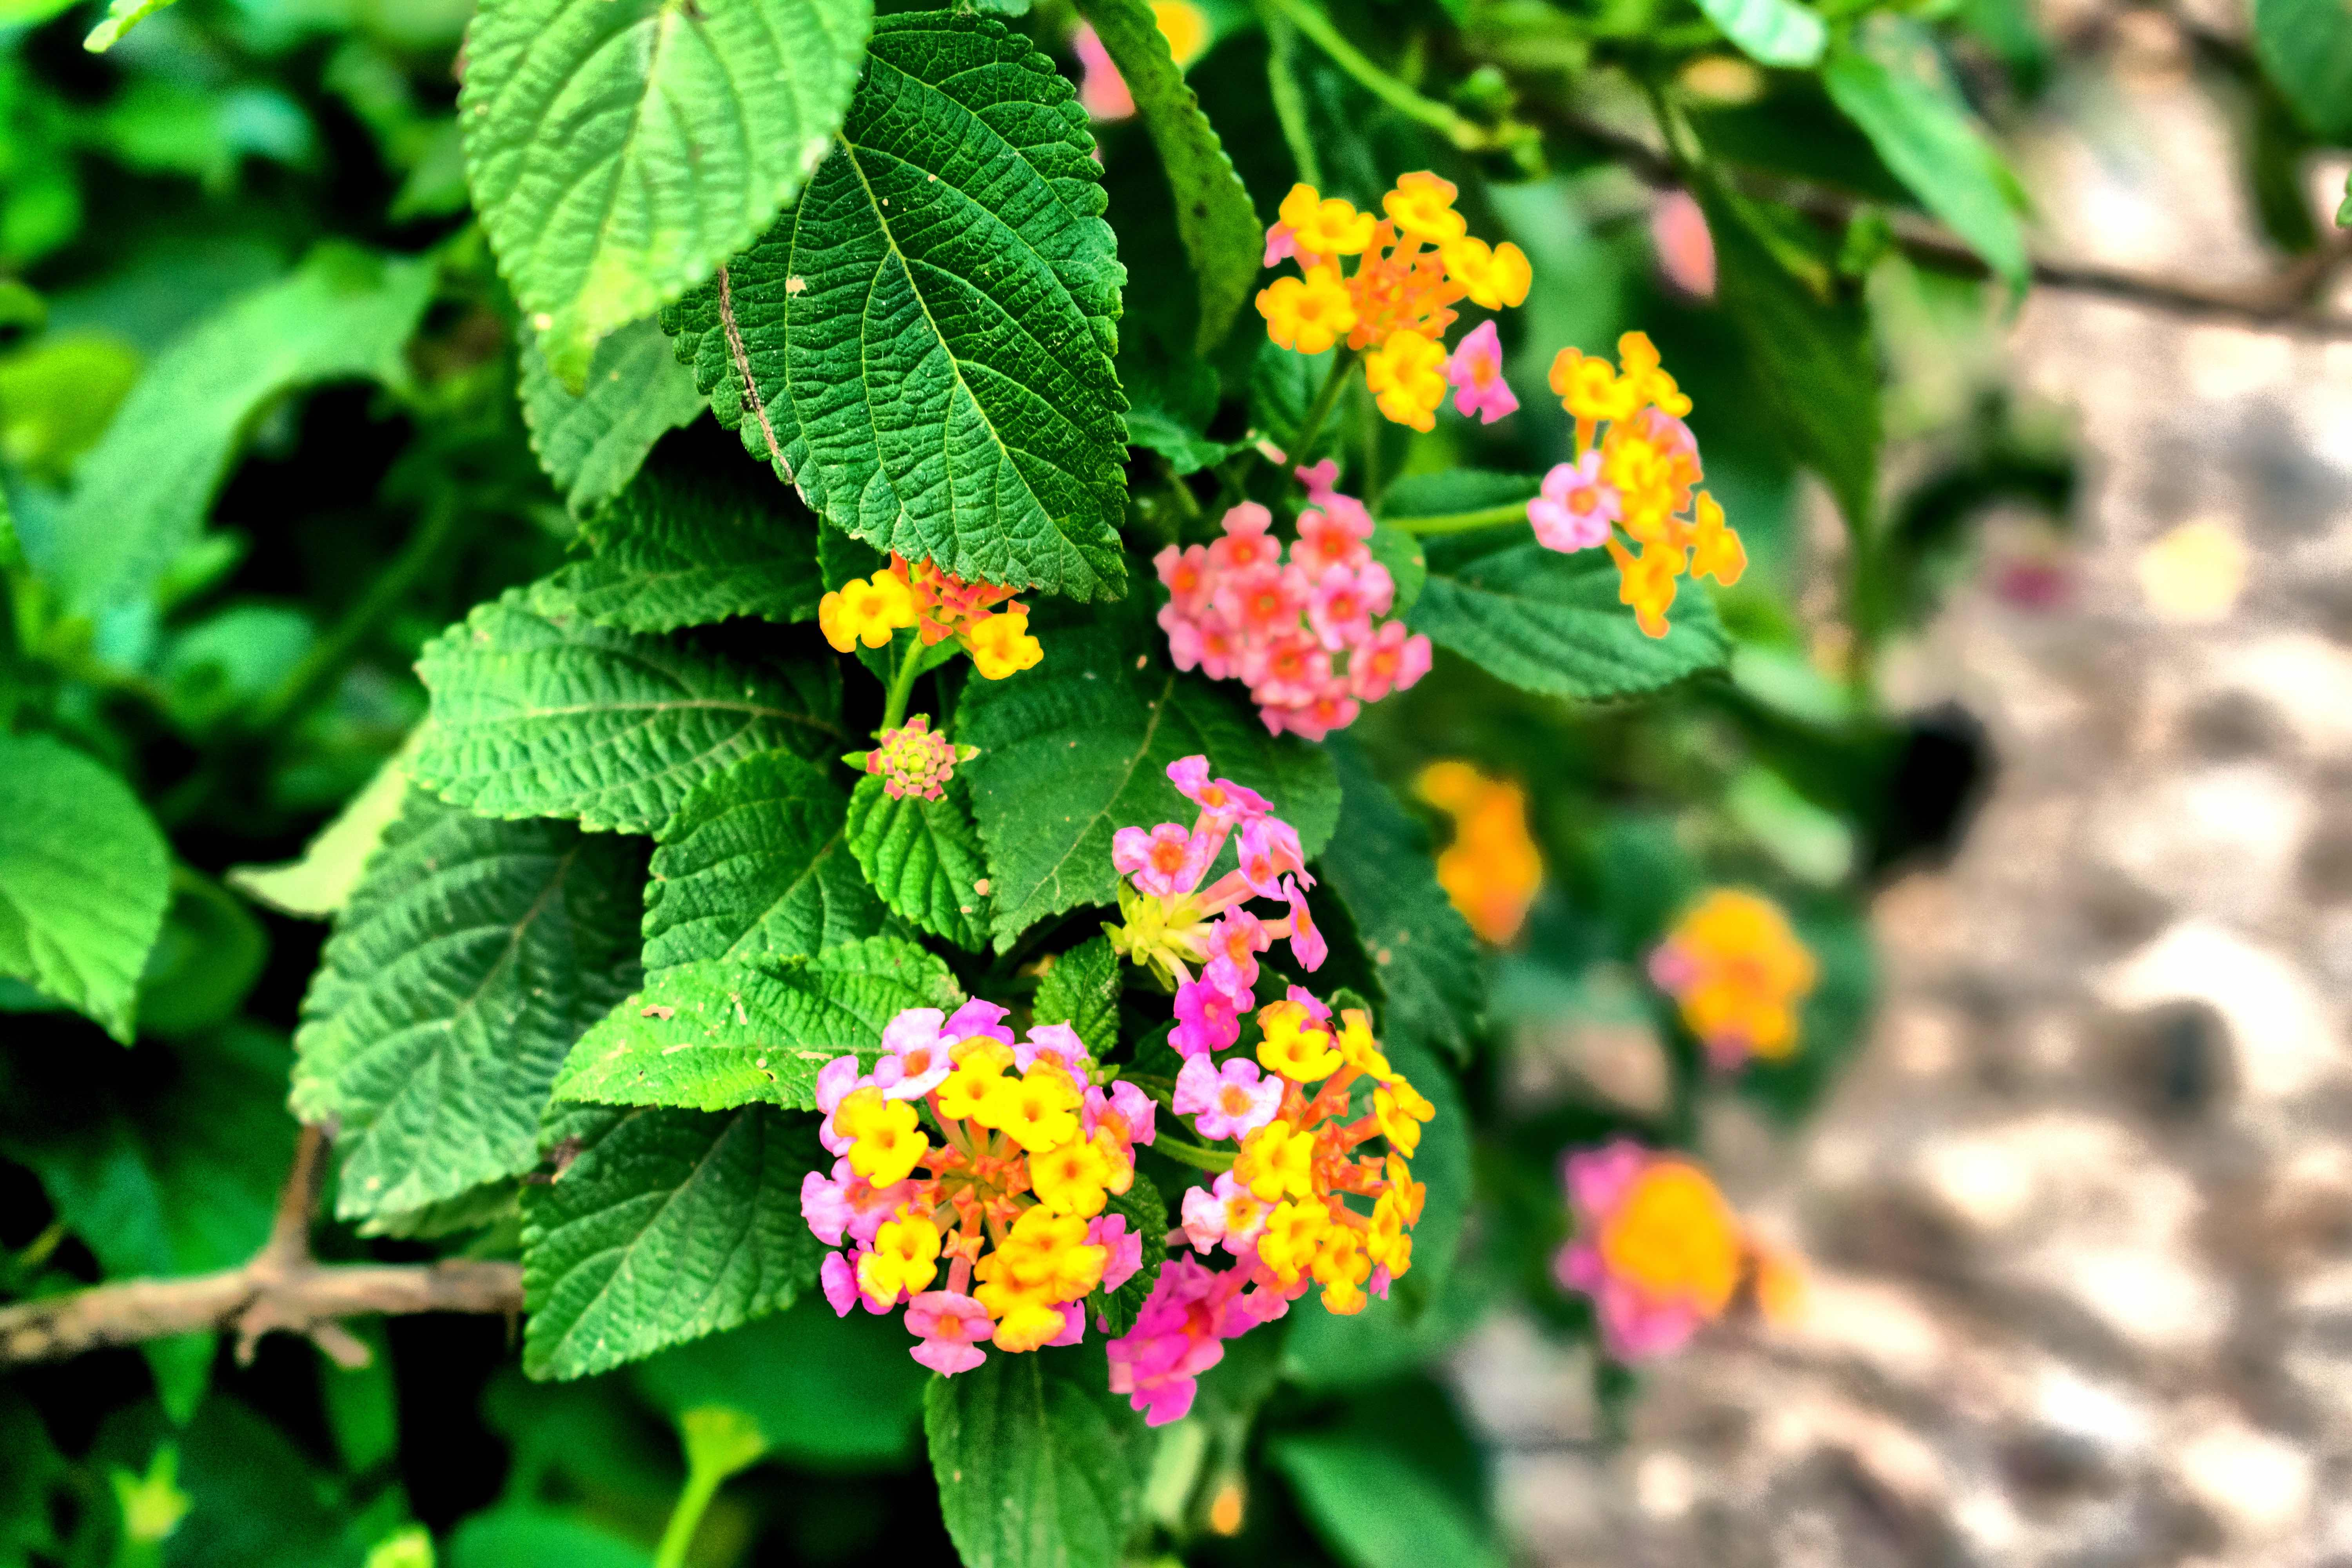 Indian lantana (Lantana camara) is an invasive species plaguing Hollongapar Gibbon Sanctuary. It was first introduced in India in the early 19th century as an ornamental plant but has now spread across several key habitats. Photo: Samratmaina2019 - CC BY-SA 4.0